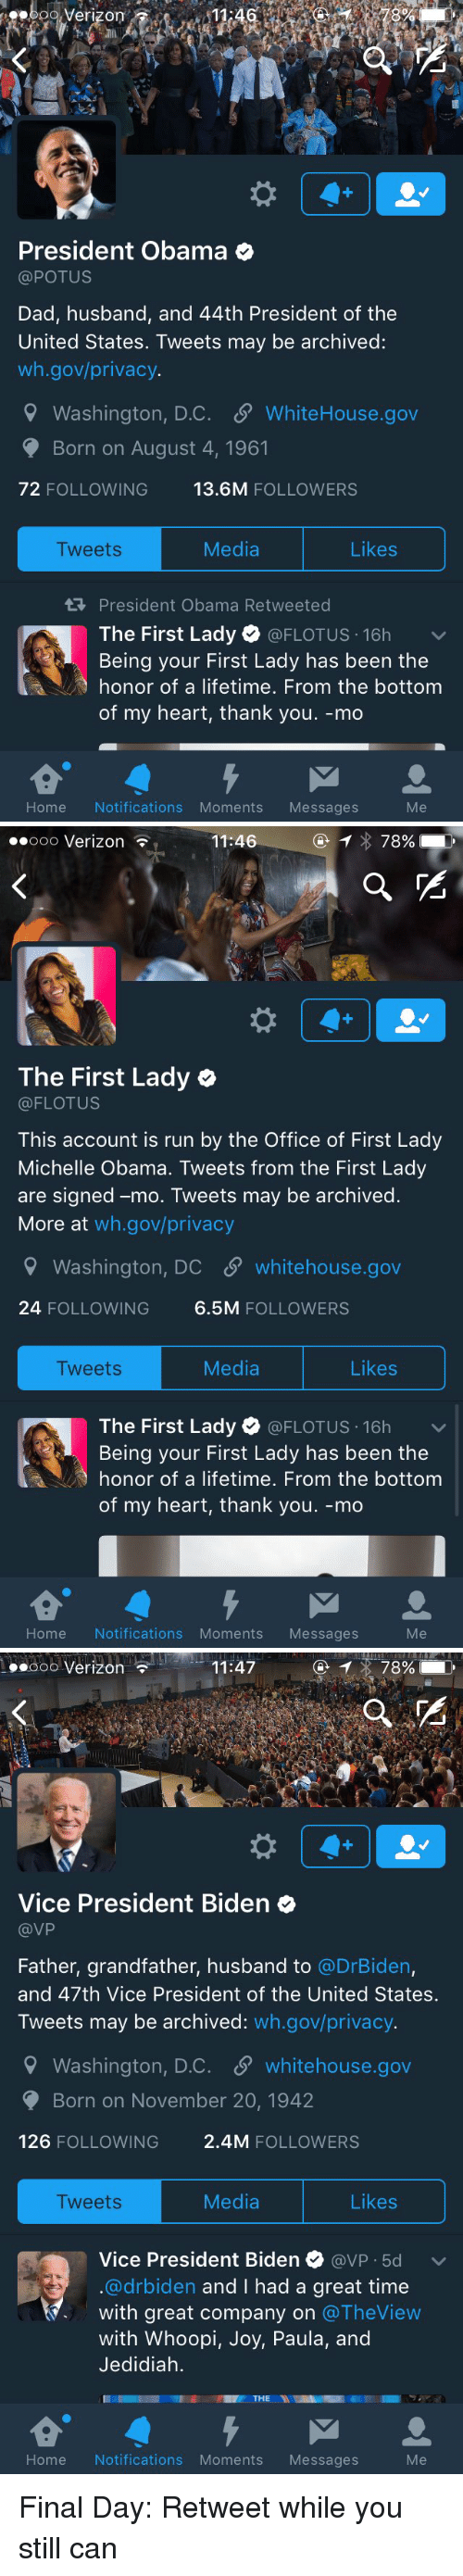 Michelle Obama, The Office, and Verizon: Verizon  President Obama  @POTUS  Dad, husband, and 44th President of the  United States. Tweets may be archived:  wh.gov/privacy.  9 Washington, D.C. SP WhiteHouse.gov  Born on August 4, 1961  72 FOLLOWING  13.6M  FOLLOWERS  Likes  Media  Tweets  President Obama Retweeted  The First Lady  @FLOTUS 16h  v  Being your First Lady has been the  honor of a lifetime. From the bottom  of my heart, thank you. -mo  Home Notifications Moments Messages   Ooo Verizon  11:46  78%  The First Lady  (a FLOTUS  This account is run by the Office of First Lady  Michelle Obama. Tweets from the First Lady  are signed -mo. Tweets may be archived  More at  wh.gov/privacy  Washington, DC SP whitehouse.gov  24 FOLLOWING  6.5M  FOLLOWERS  Media  Likes  Tweets  The First Lady  (a FLOTUS 16h  v  Being your First Lady has been the  honor of a lifetime. From the bottom  of my heart, thank you. -mo  Home Notifications Moments  Messages   11:47  78%  Ooo Verizon  Vice President Biden  VP  Father, grandfather, husband to  @DrBiden,  and 47th Vice President of the United States.  Tweets may be archived  wh.gov/privacy.  9 Washington, D.C. S whitehouse.gov  Born on November 20, 1942  126  FOLLOWING  2.4M FOLLOWERS  Media  Likes  Tweets  Vice President Biden  avP 5d v  @drbiden and I had a great time  with great company on  The View  with Whoopi  Joy, Paula, and  Jedidiah.  THE  NI  Home Notifications Moments Messages Final Day: Retweet while you still can